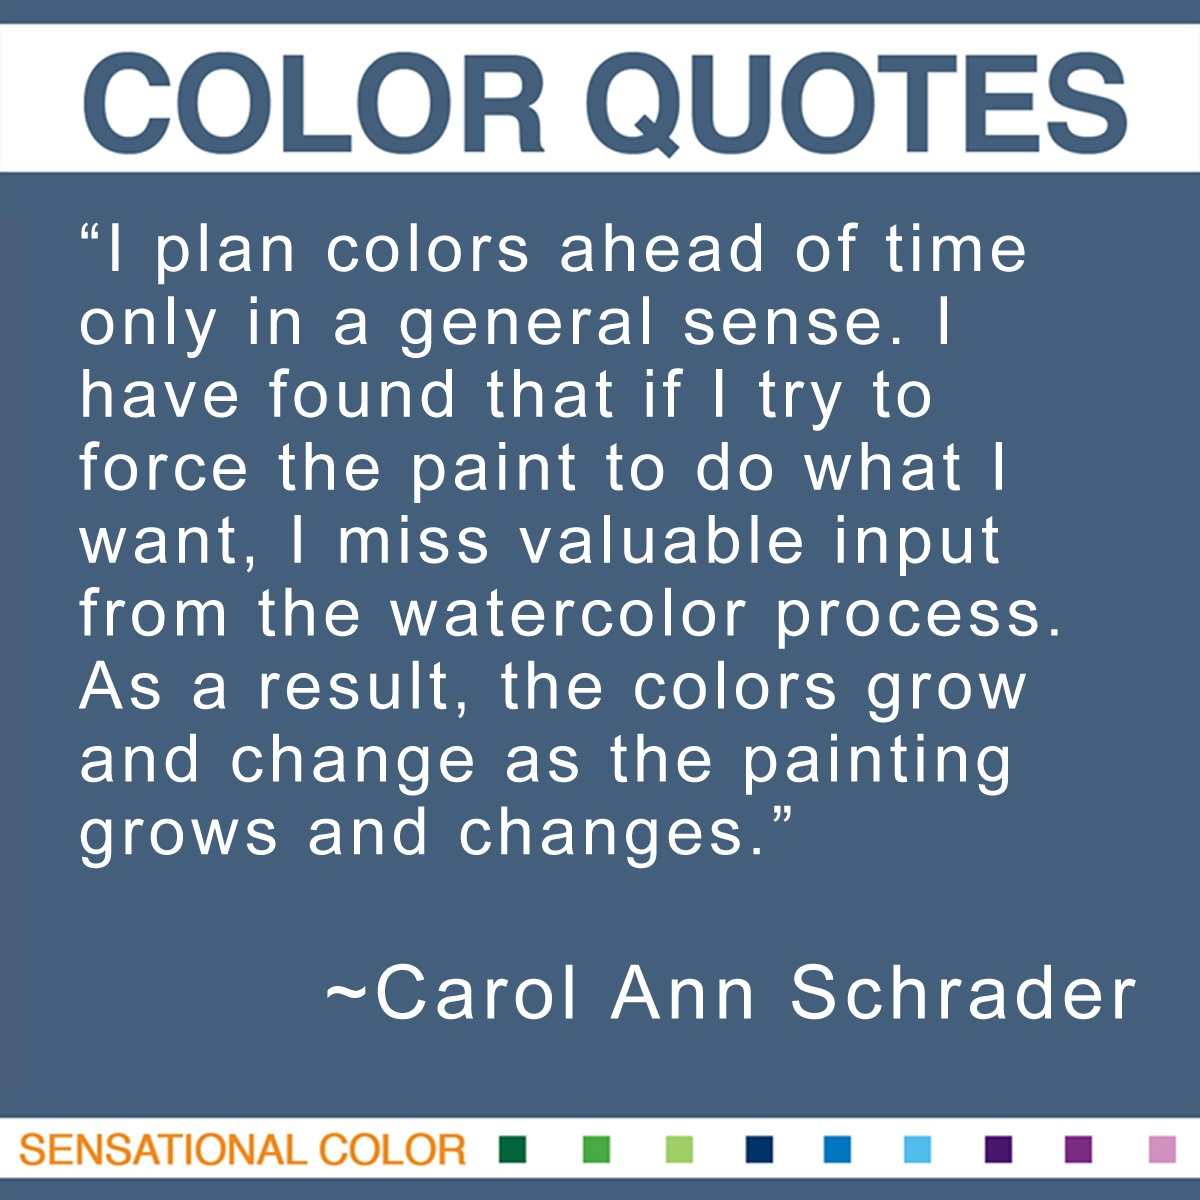 """I plan colors ahead of time only in a general sense. I have found that if I try to force the paint to do what I want, I miss valuable input from the watercolor process. As a result, the colors grow and change as the painting grows and changes."" - Carol Ann Schrader"